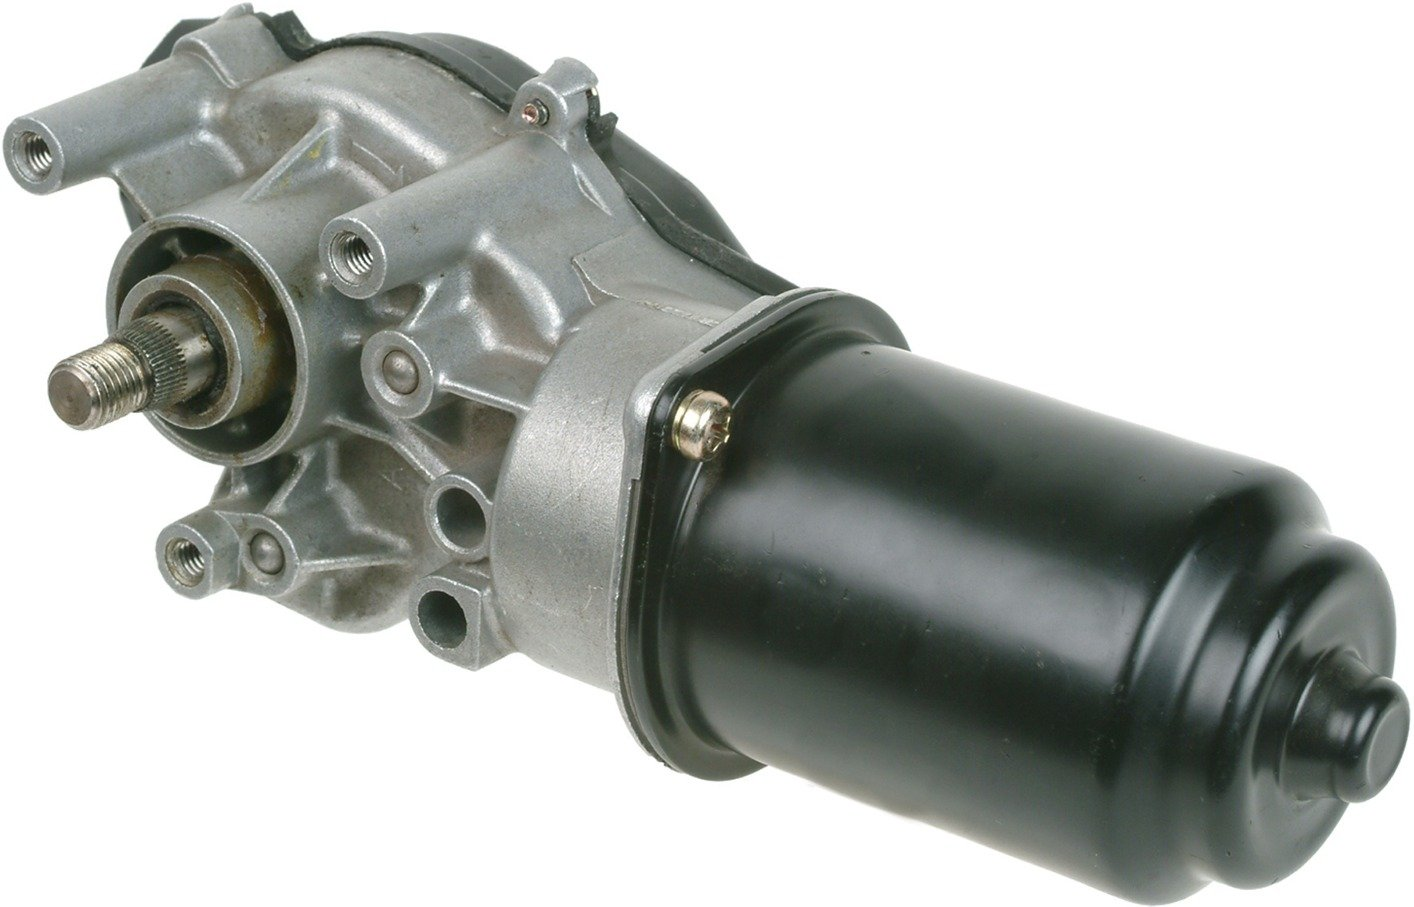 Cardone 43-4506 Remanufactured Import Wiper Motor A1 Cardone 43-4506-AA1